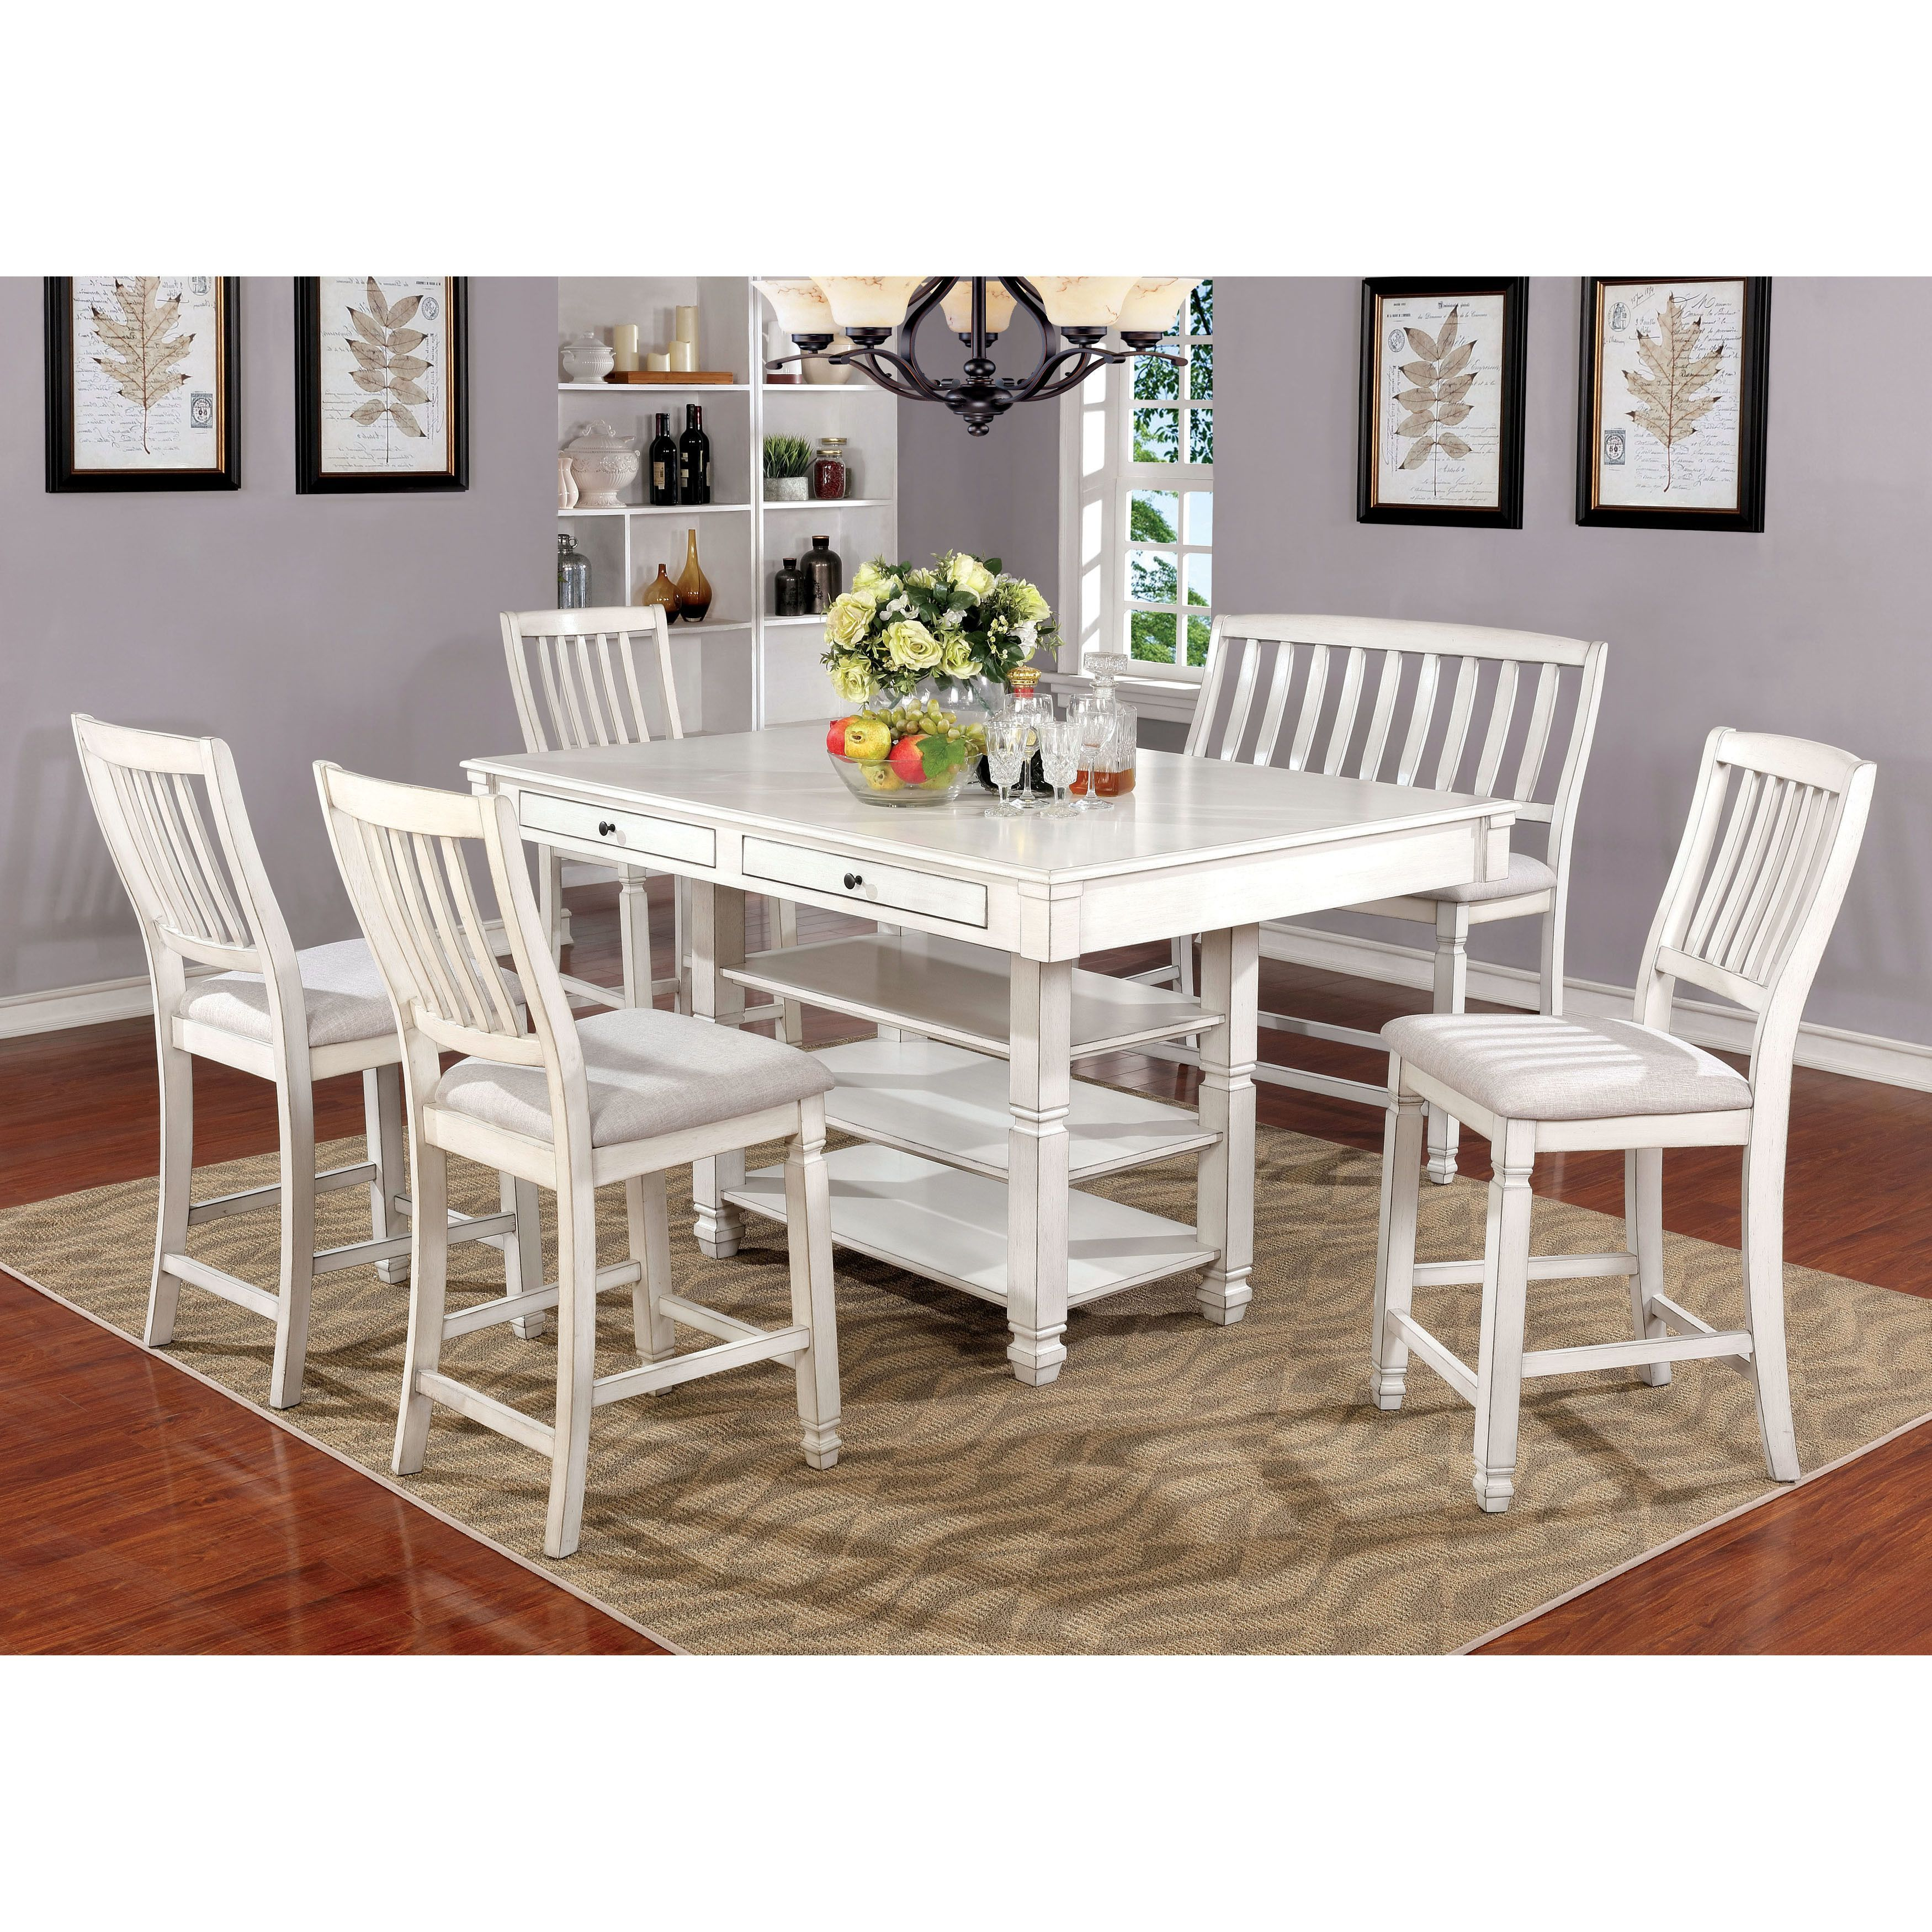 Furniture of america seren country style piece antique white